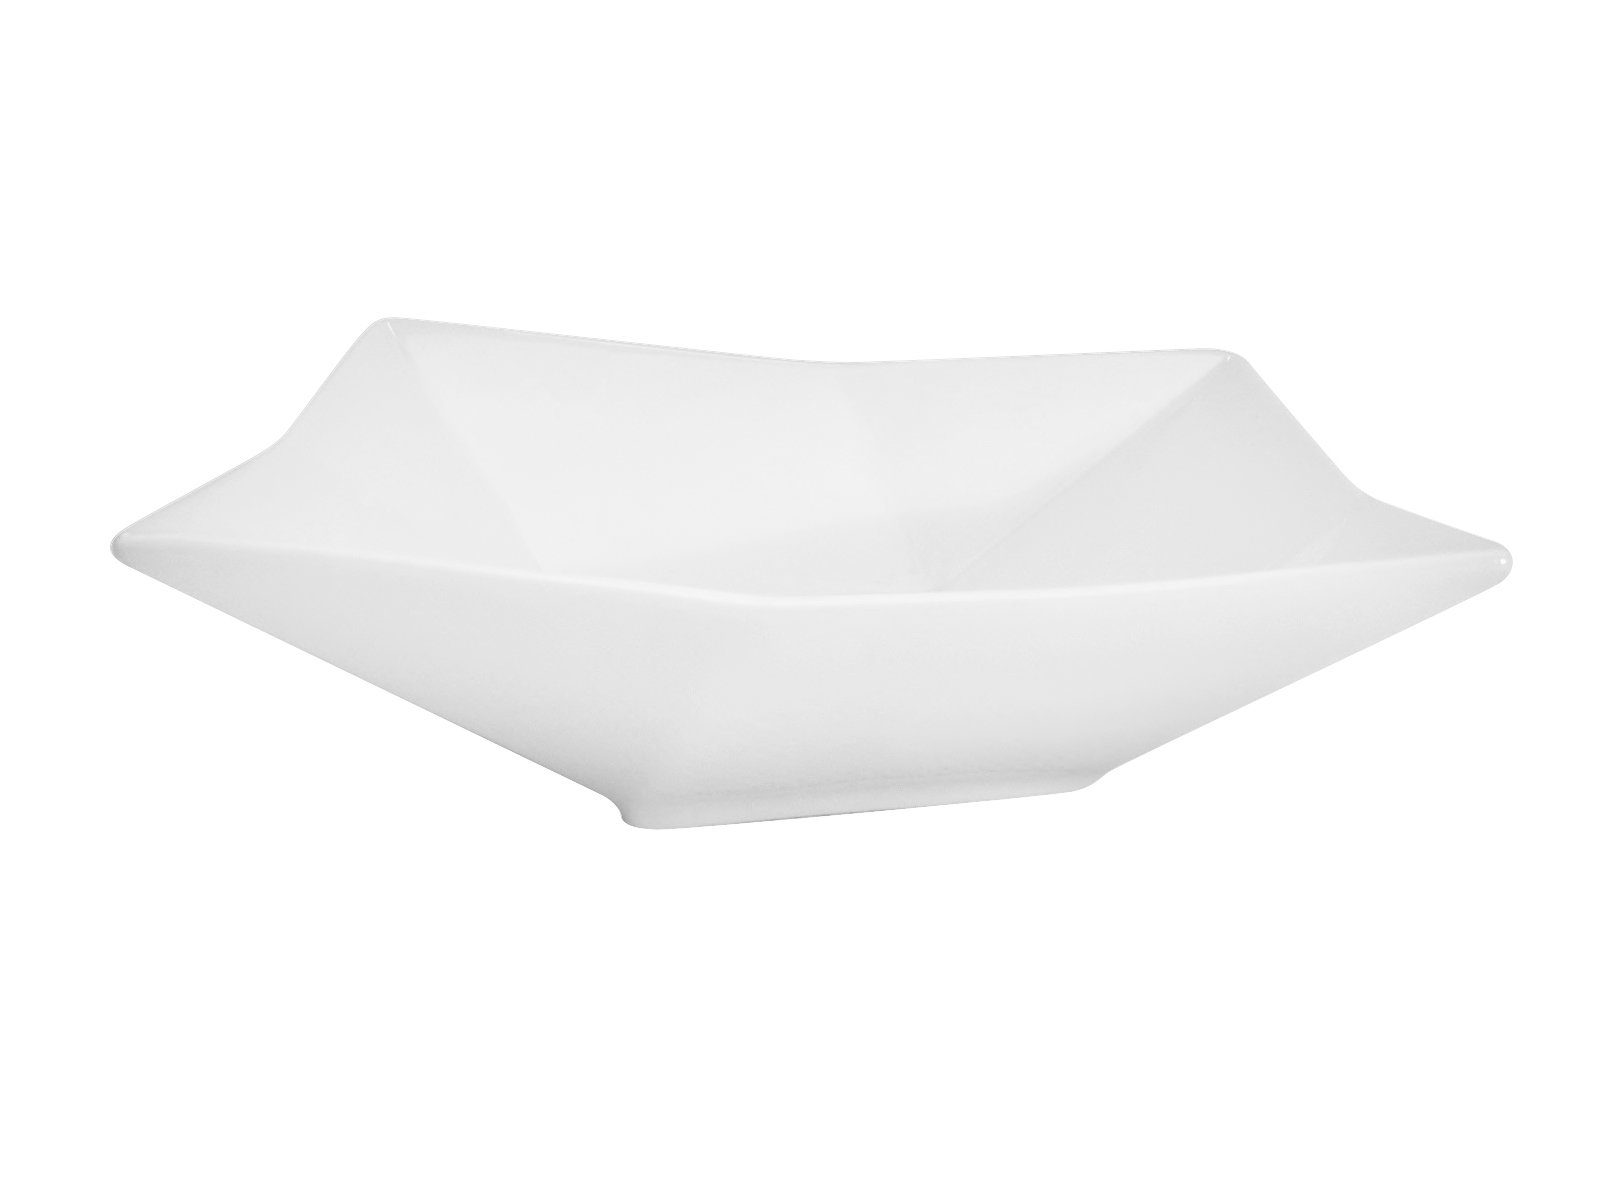 CAC China QZT-B6 Crystal 6-Inch by 6-1/2-Inch by 2-1/2-Inch Super White Porcelain Square Bowl, 10-Ounce, Box of 36